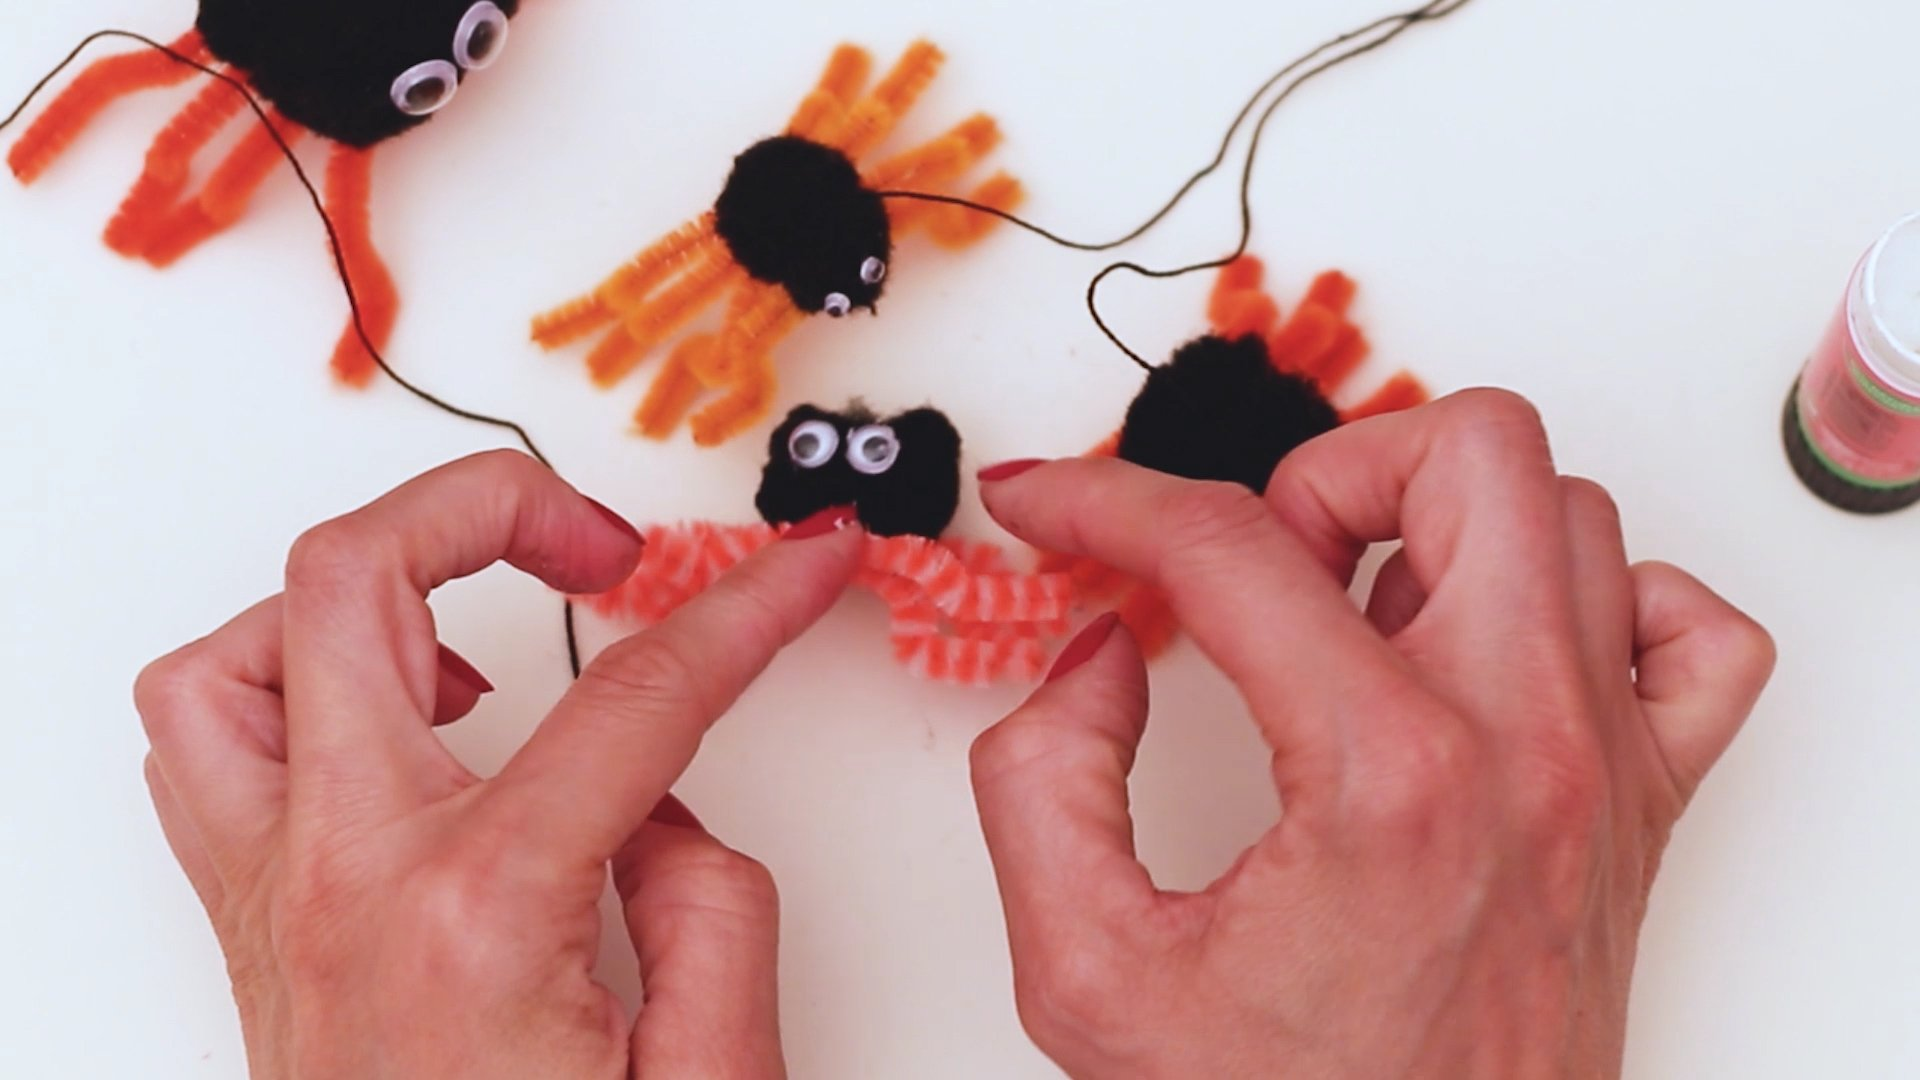 Easy Diy Fall Spider Craft for Kids of all ages including preschoolers and toddlers